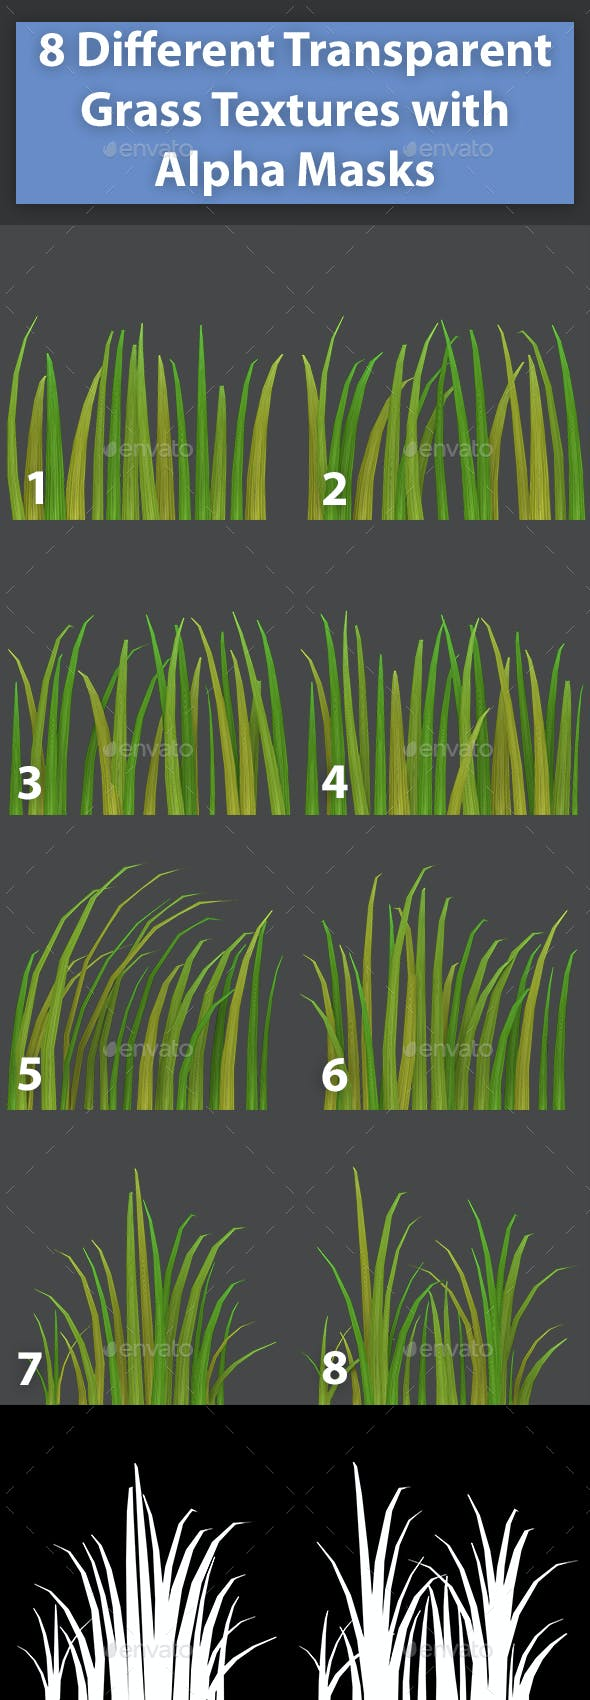 8 Different Transparent Grass Textures - 3DOcean Item for Sale